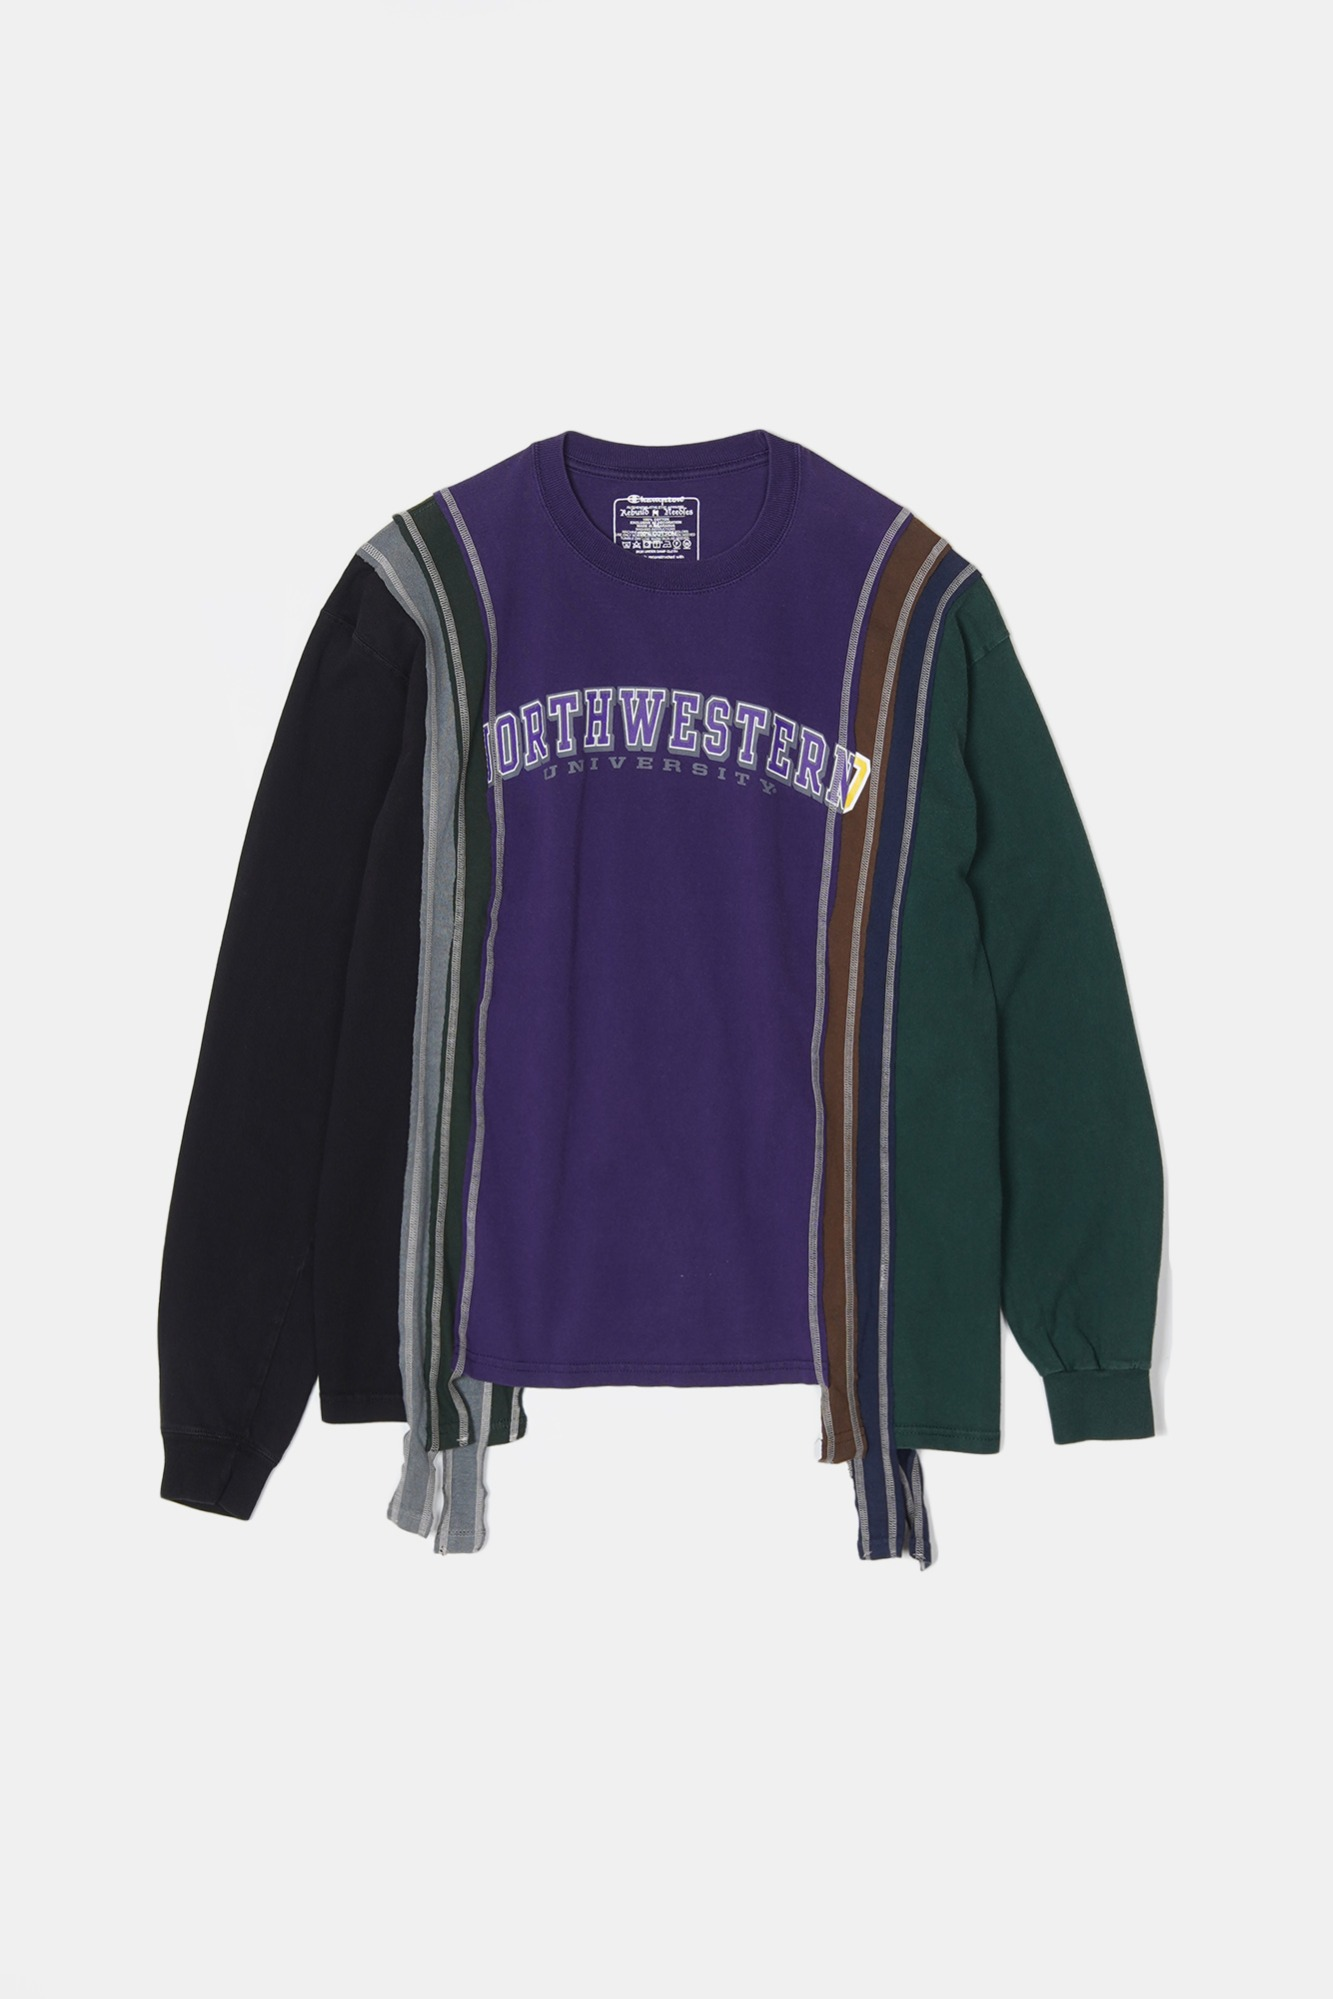 REBUILD BY NEEDLES 7 Cuts L/S College Tee 3